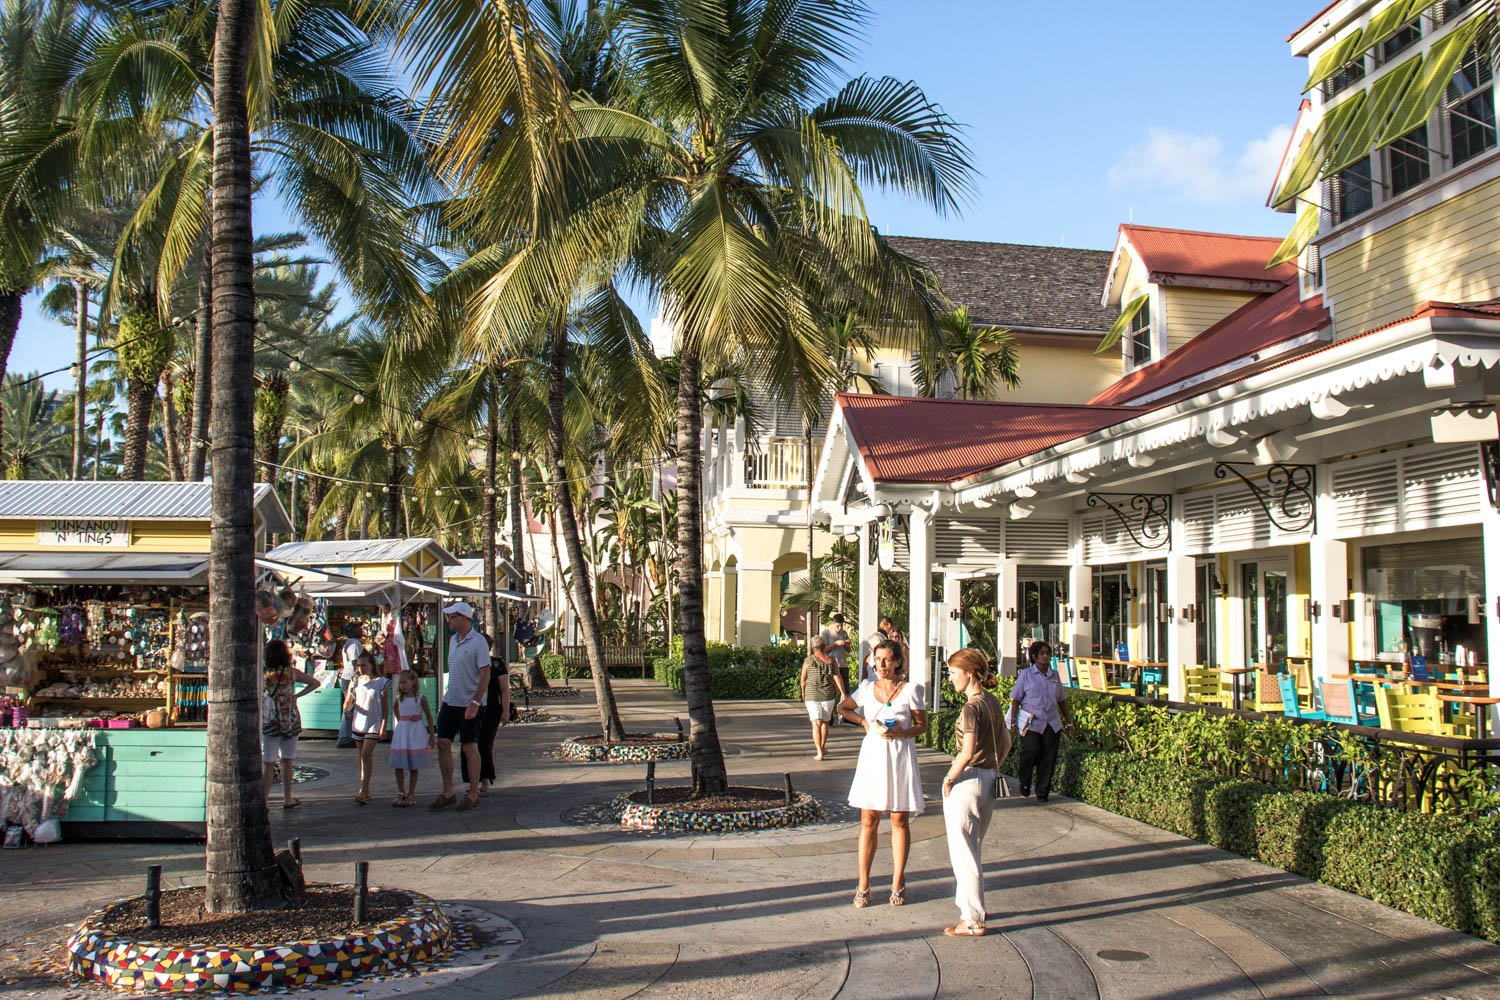 Take a walk under palm trees in the capital of the Bahamas. There are many cheap things to do in Nassau Bahamas cruise port like shopping for local artisan work or dining on Conch.